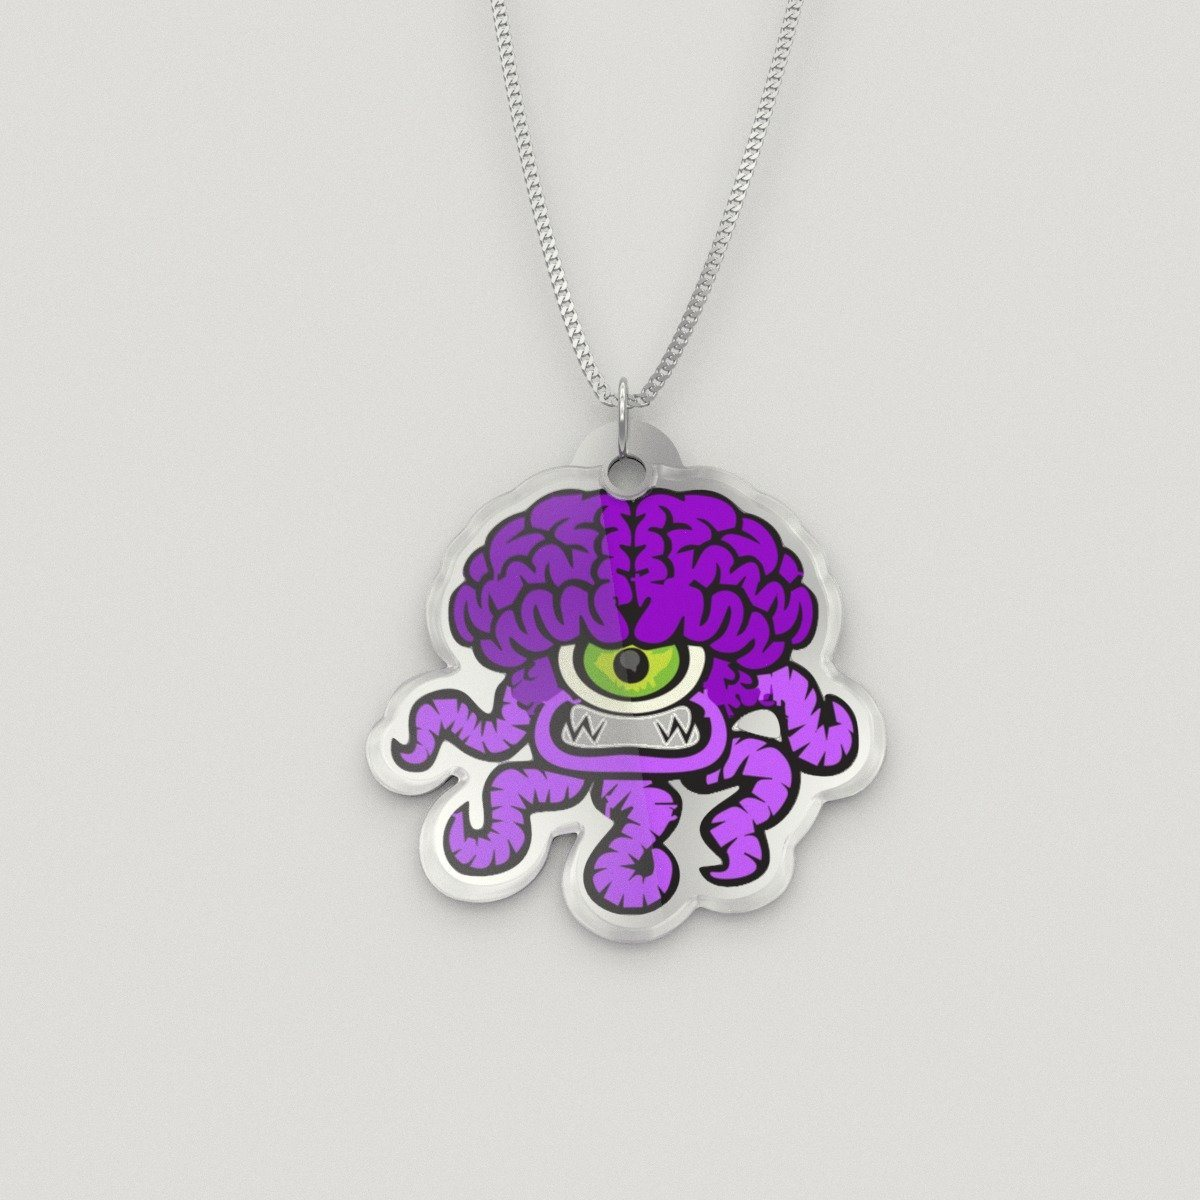 Pendant - Zippy The Chiari Malformation Monster Silver Necklace